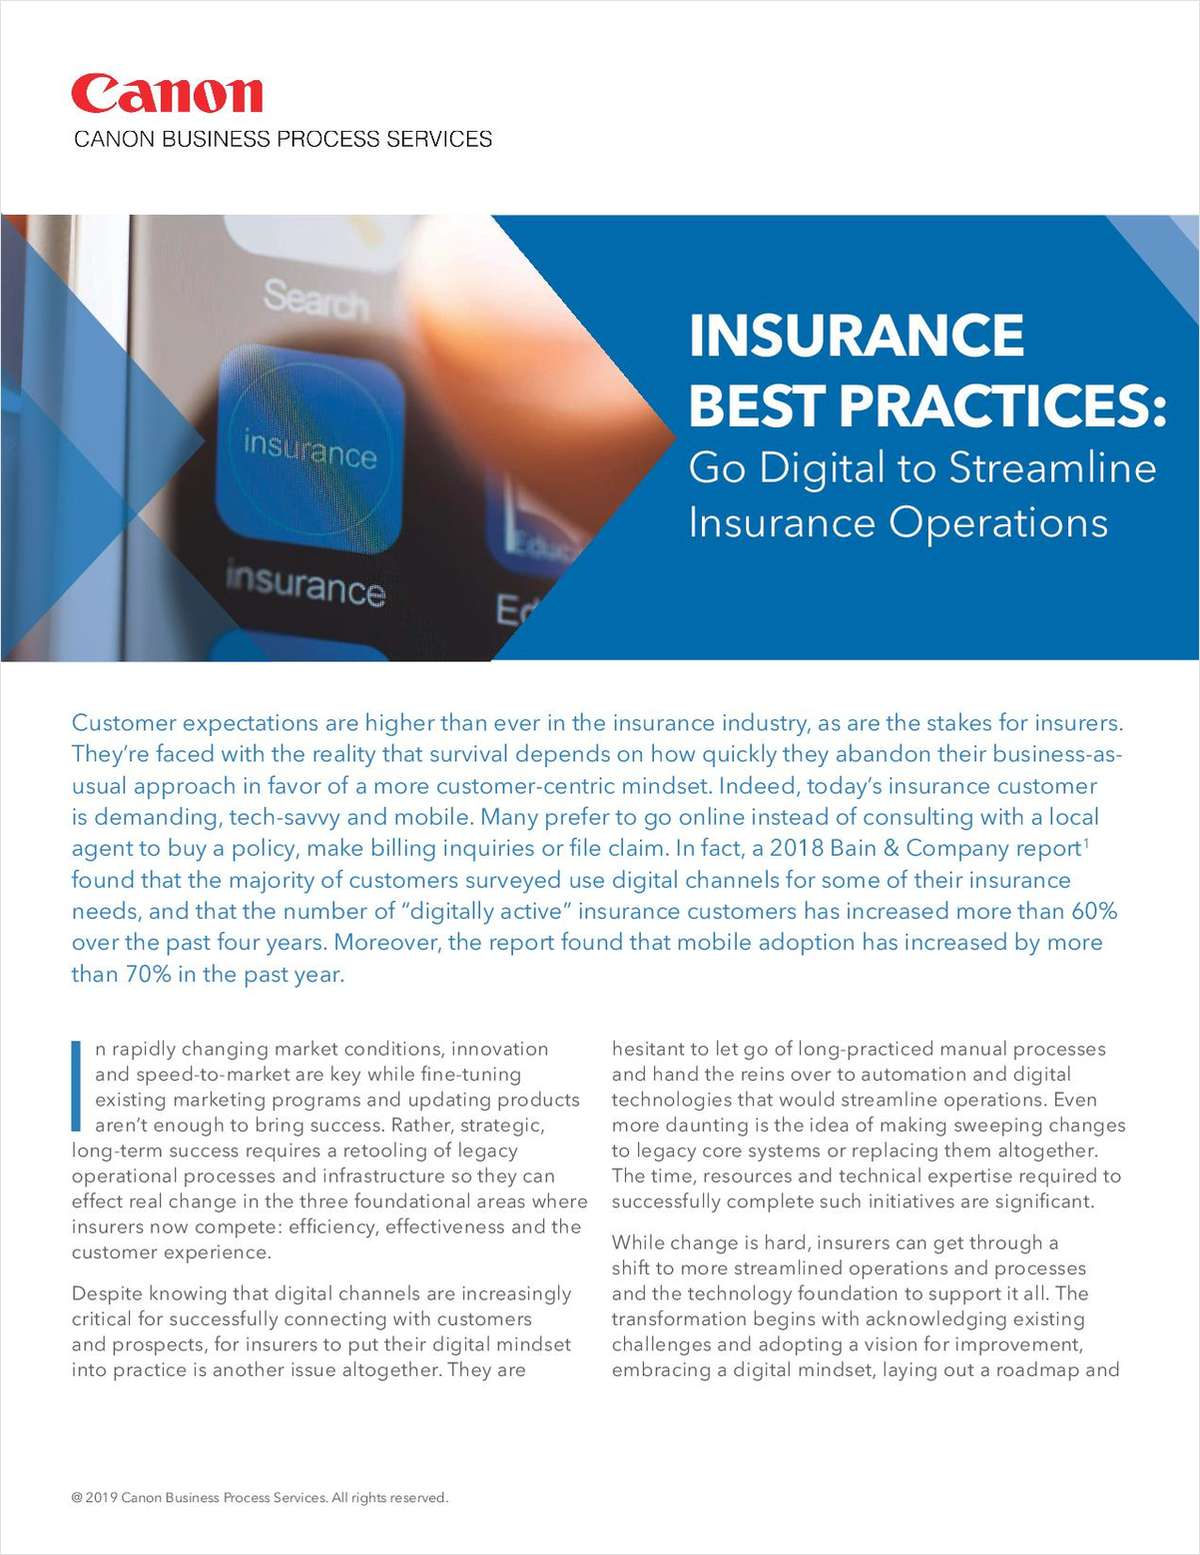 Insurance Best Practices: Go Digital to Streamline Insurance Operations